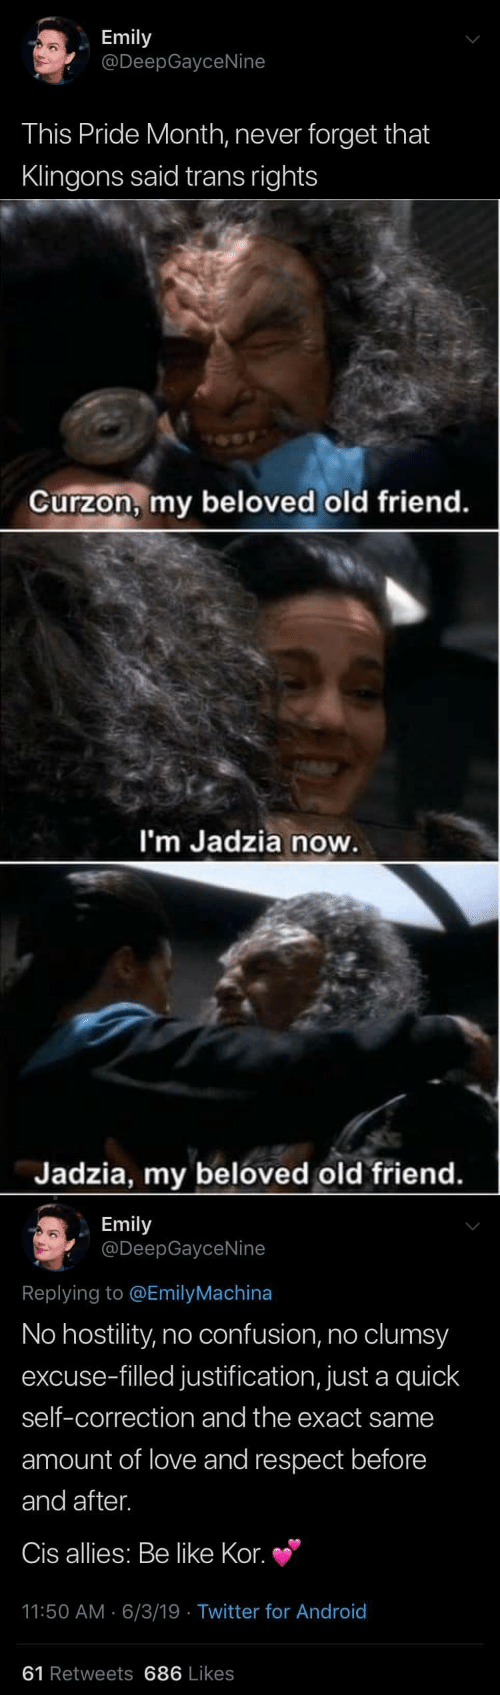 old friend: Emily  @DeepGayceNine  This Pride Month, never forget that  Klingons said trans rights   Curzon, my beloved old friend.  I'm Jadzia now.  Jadzia, my beloved old friend.   Emily  @DeepGayceNine  Replying to @EmilyMachina  No hostility, no confusion, no clumsy  excuse-filled justification, just a quick  self-correction and the exact same  amount of love and respect before  and after.  Cis allies: Be like Kor.  11:50 AM 6/3/19 Twitter for And roid  61 Retweets 686 Likes